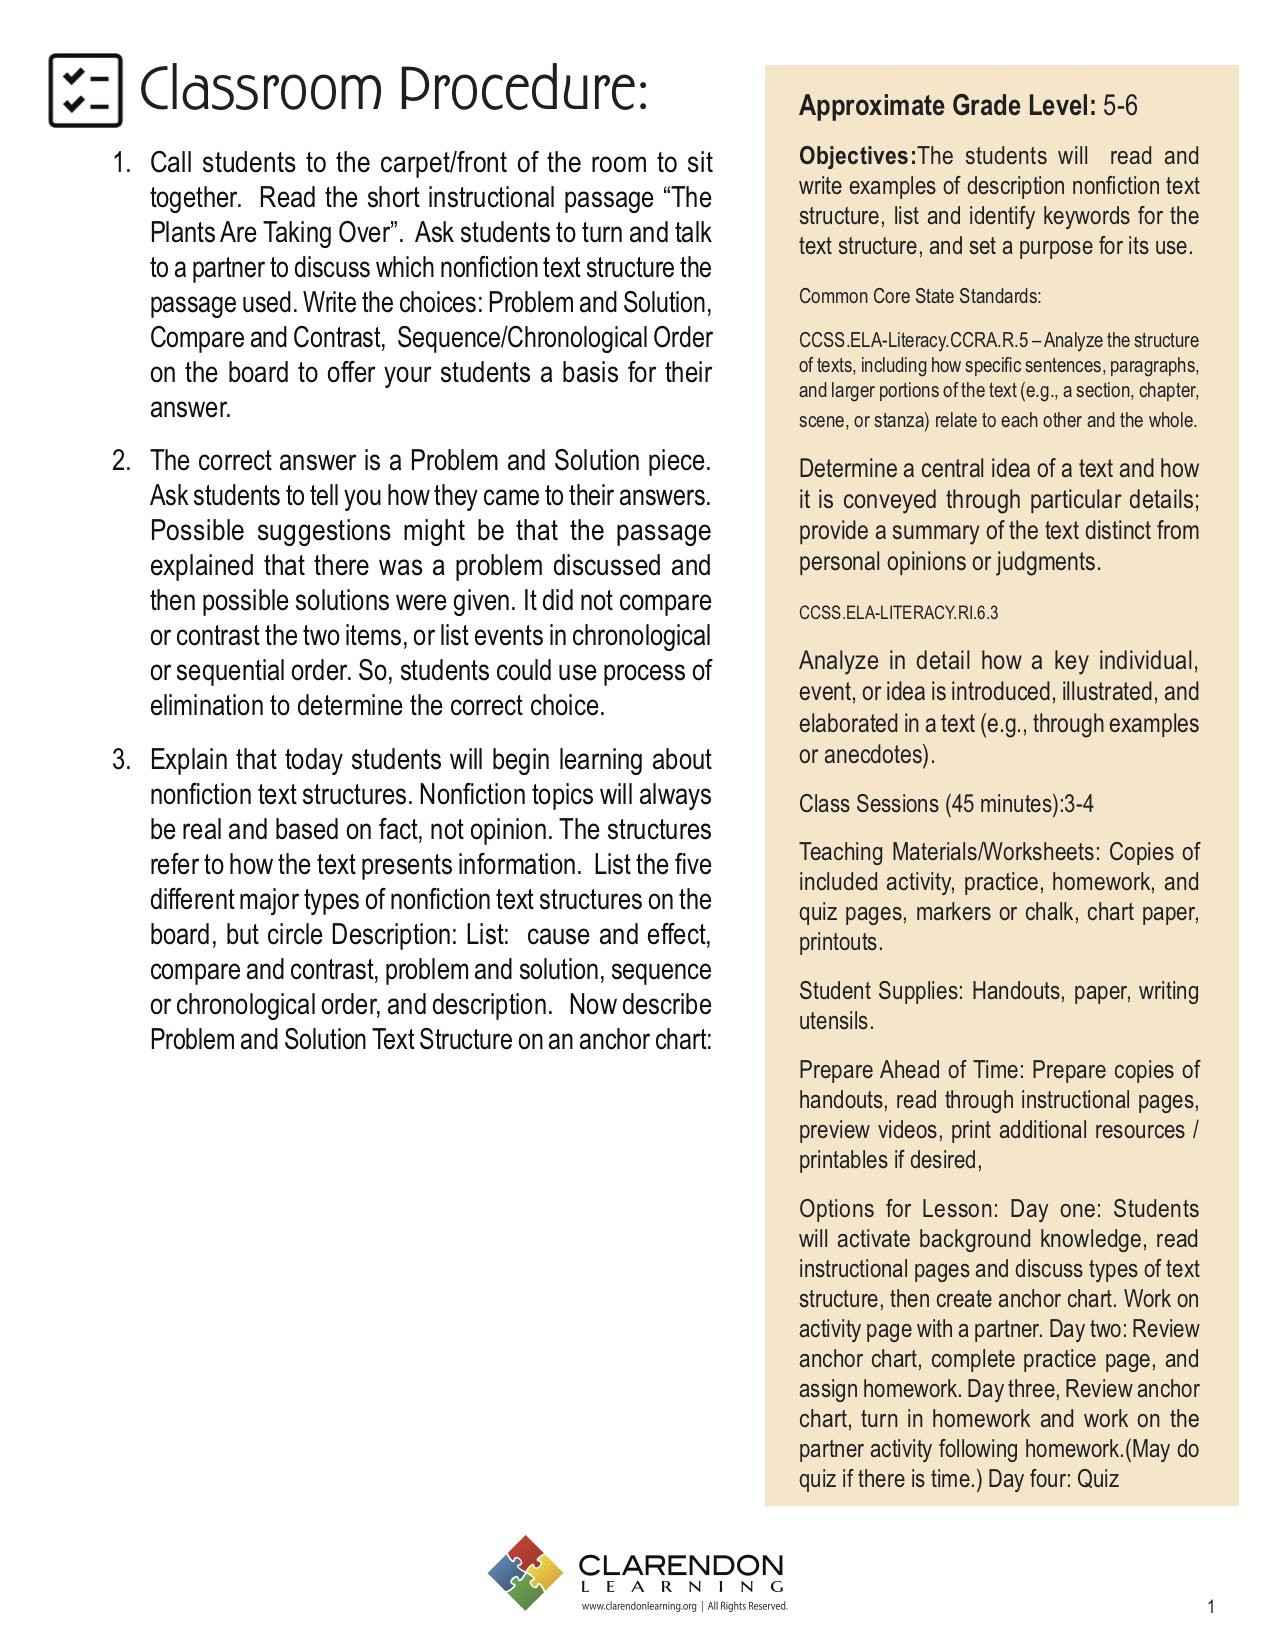 Text Structure Worksheets 4th Grade Problem and solution Nonfiction Text Structure